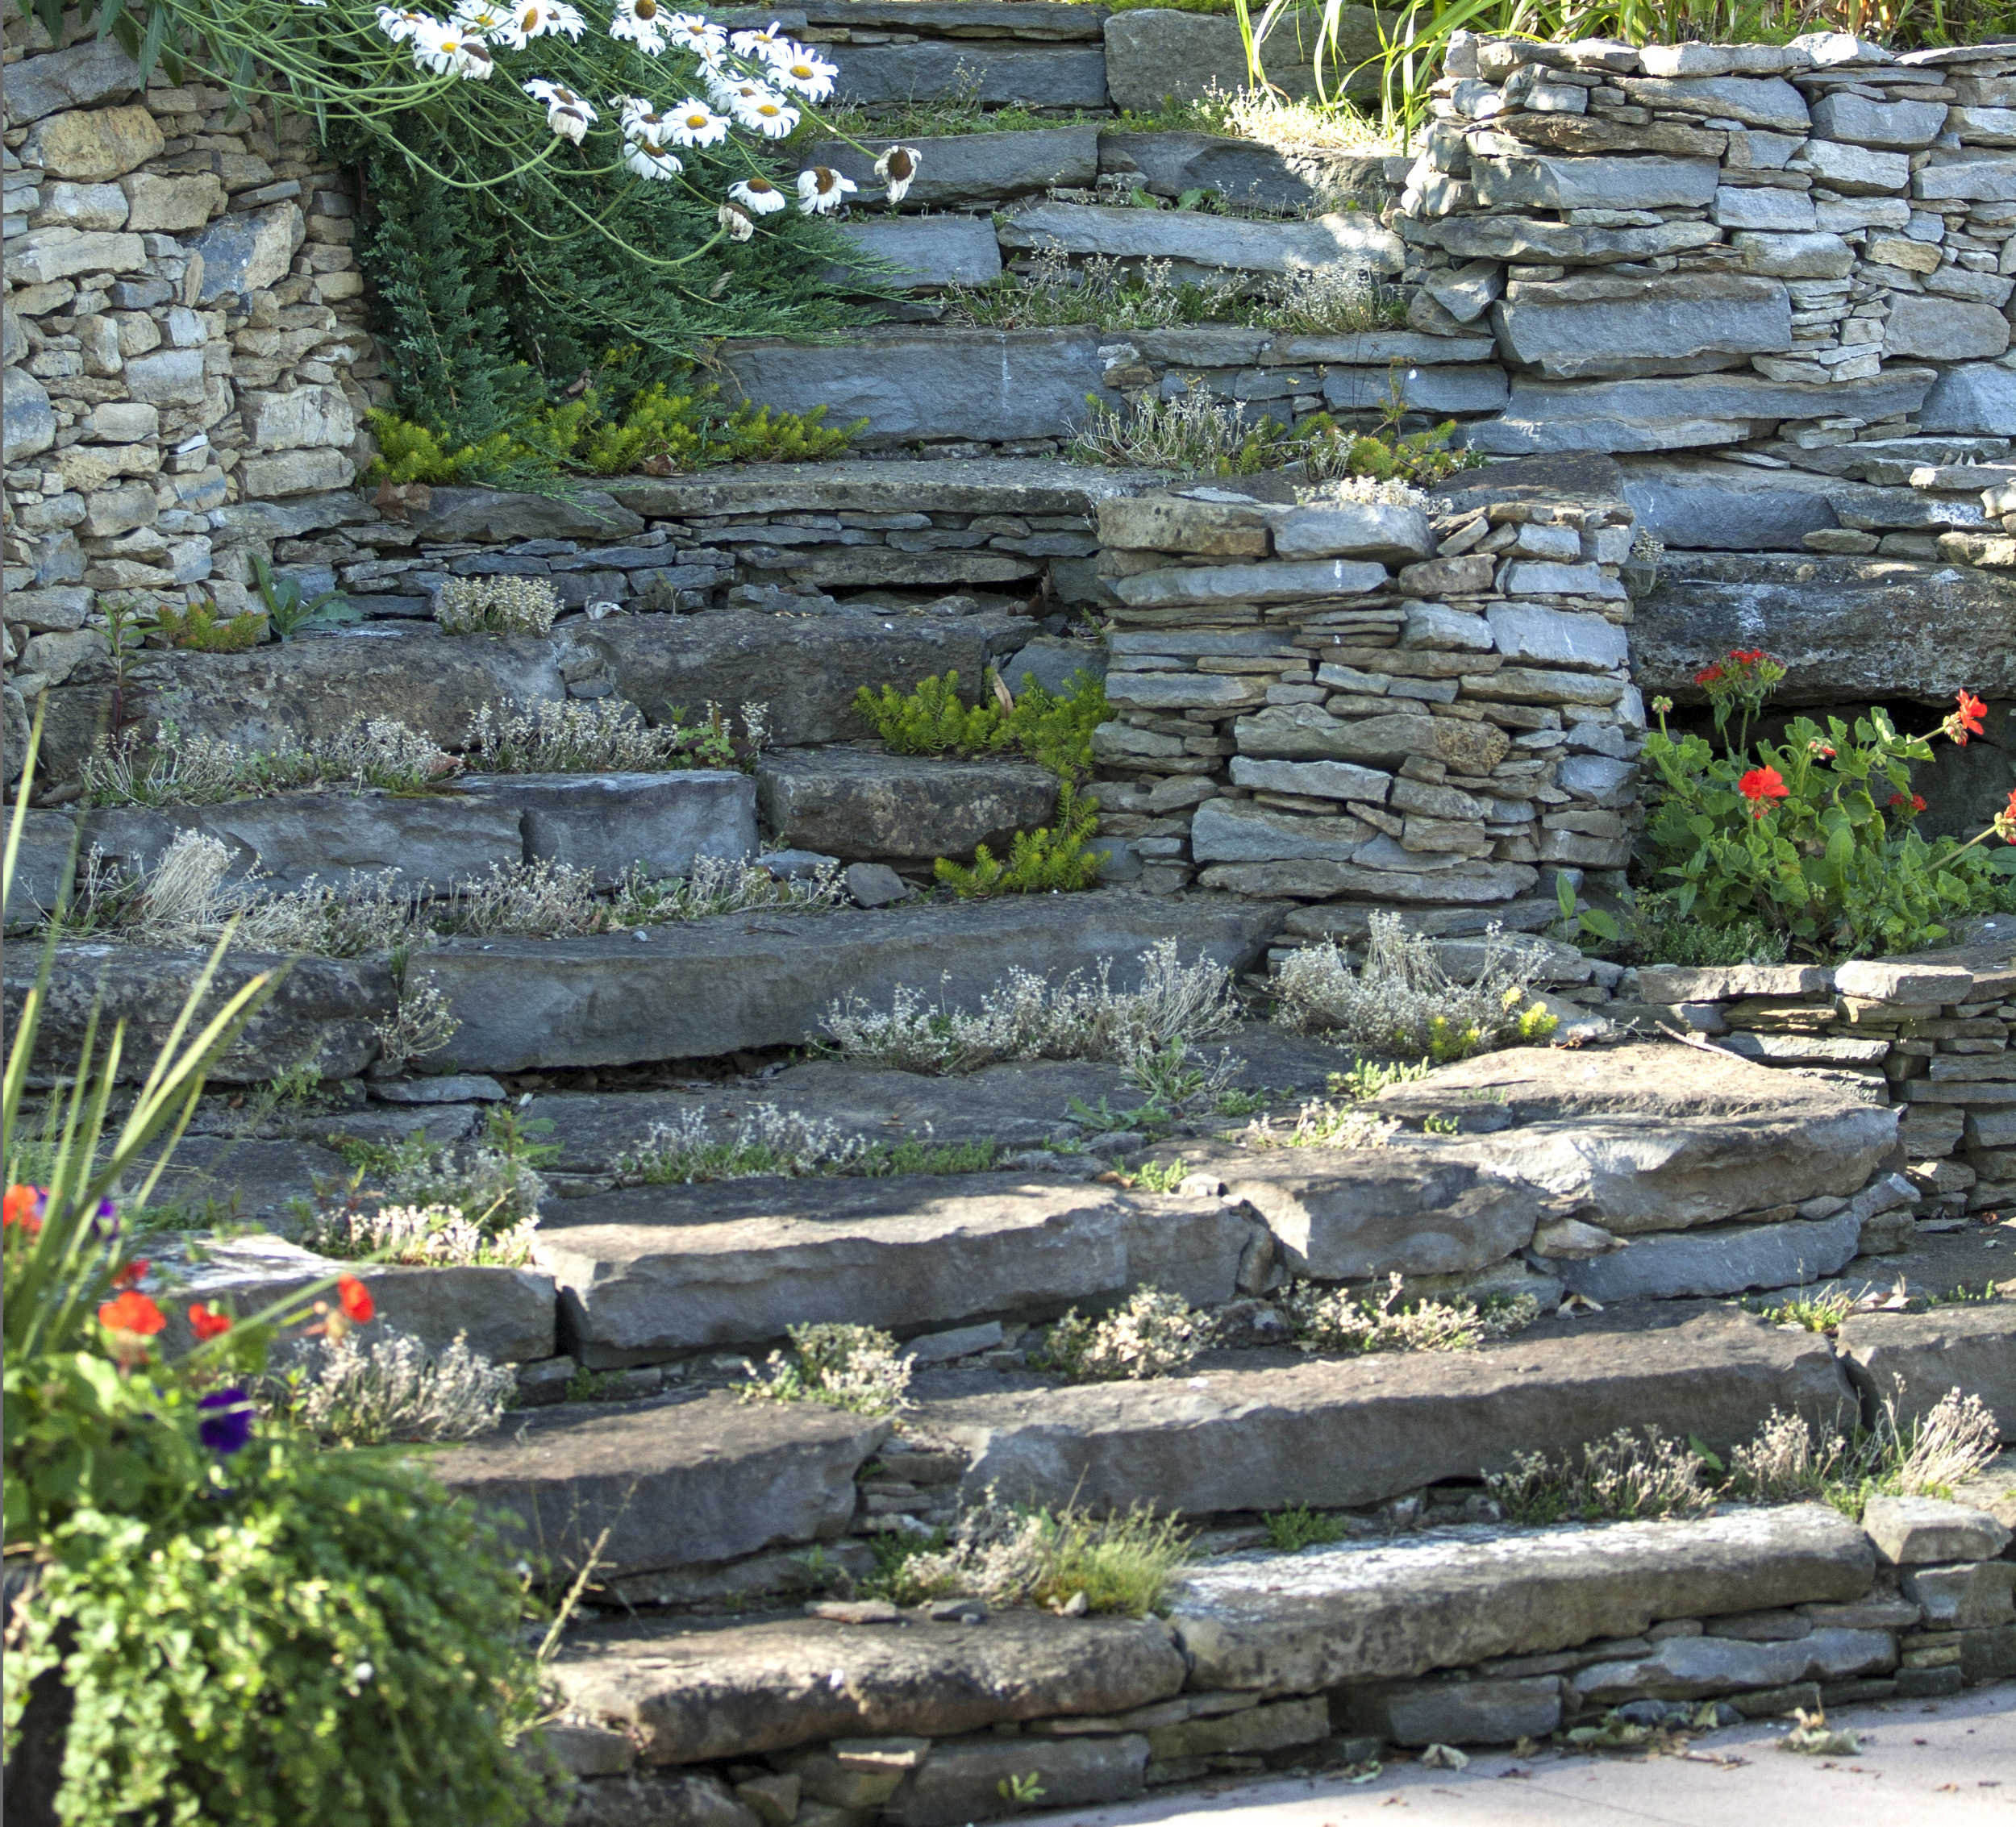 Landscape Design | Landscaping | Terrace Gardens | Dry Lay Stone | Waterfront Dream Home | Riverview Design Solutions | Prescott, Ontario, Canada